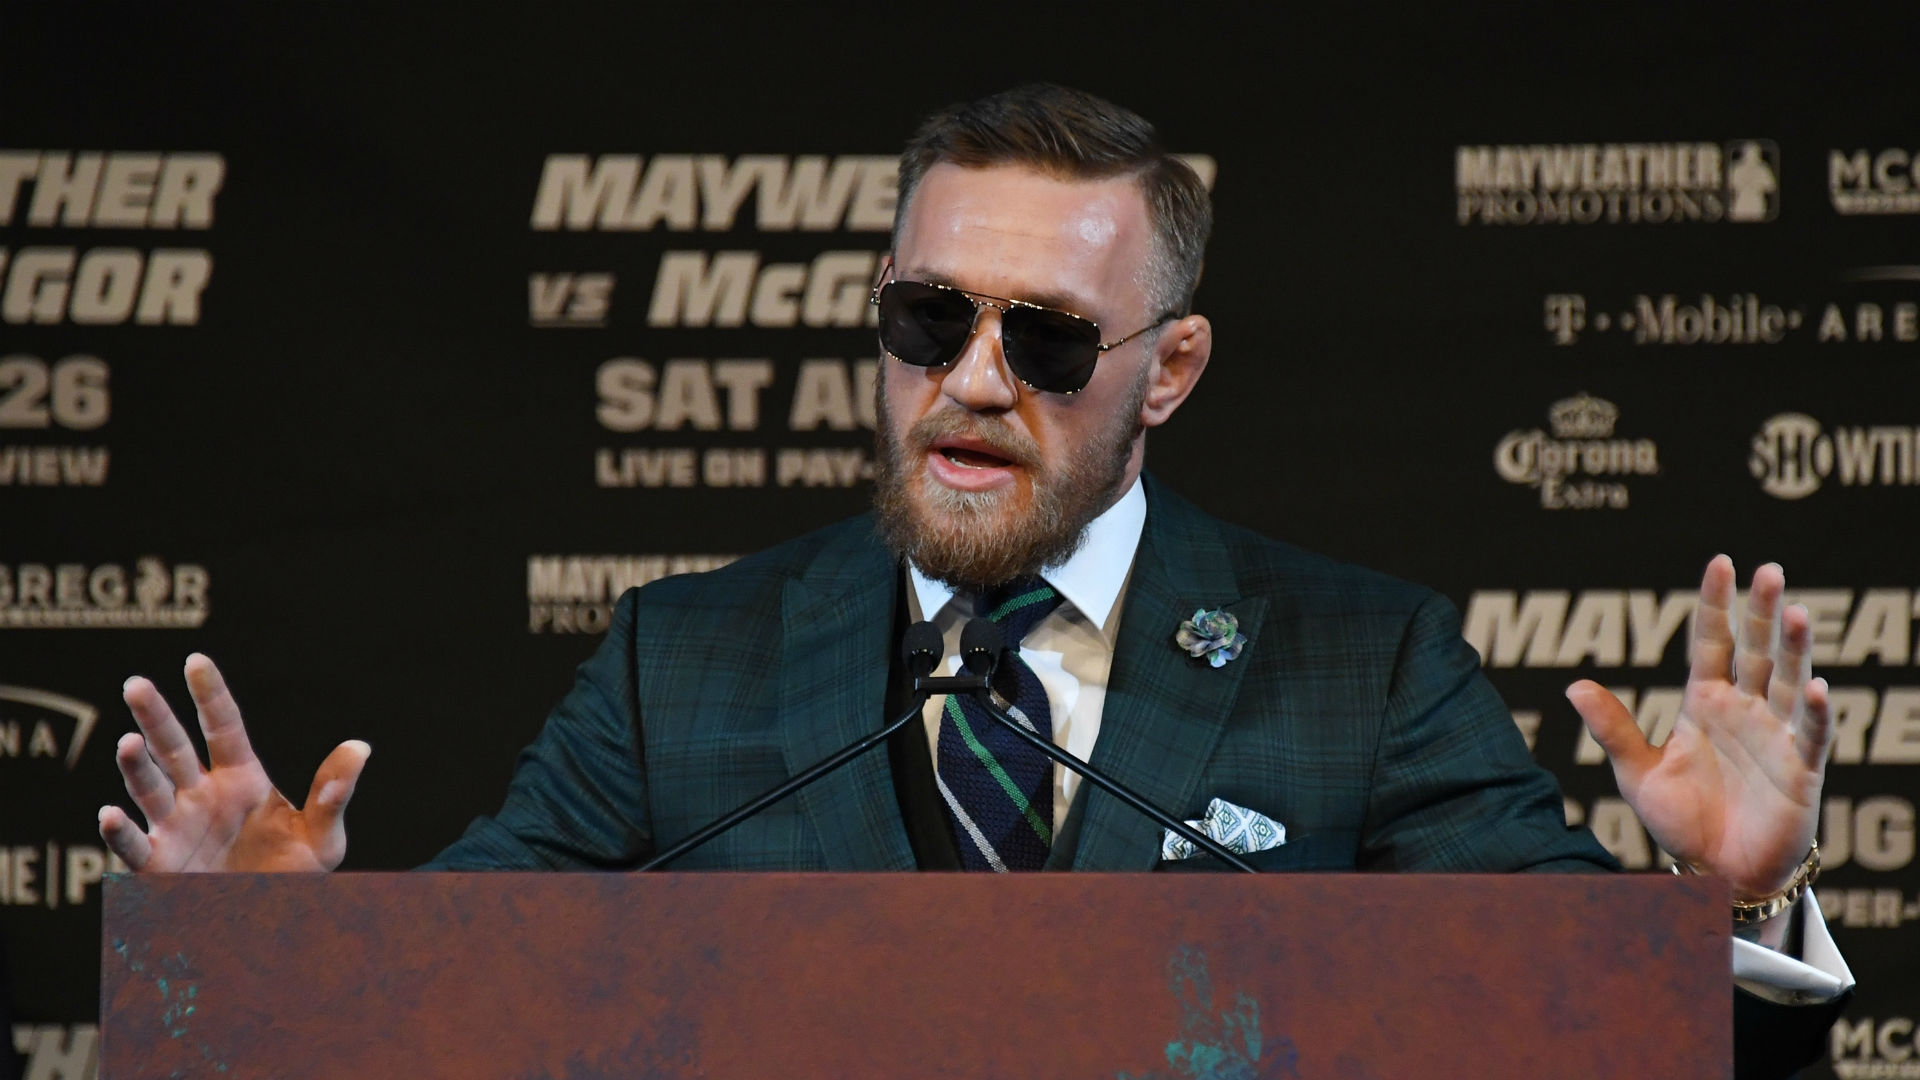 McGregor released on $50K bond after melee